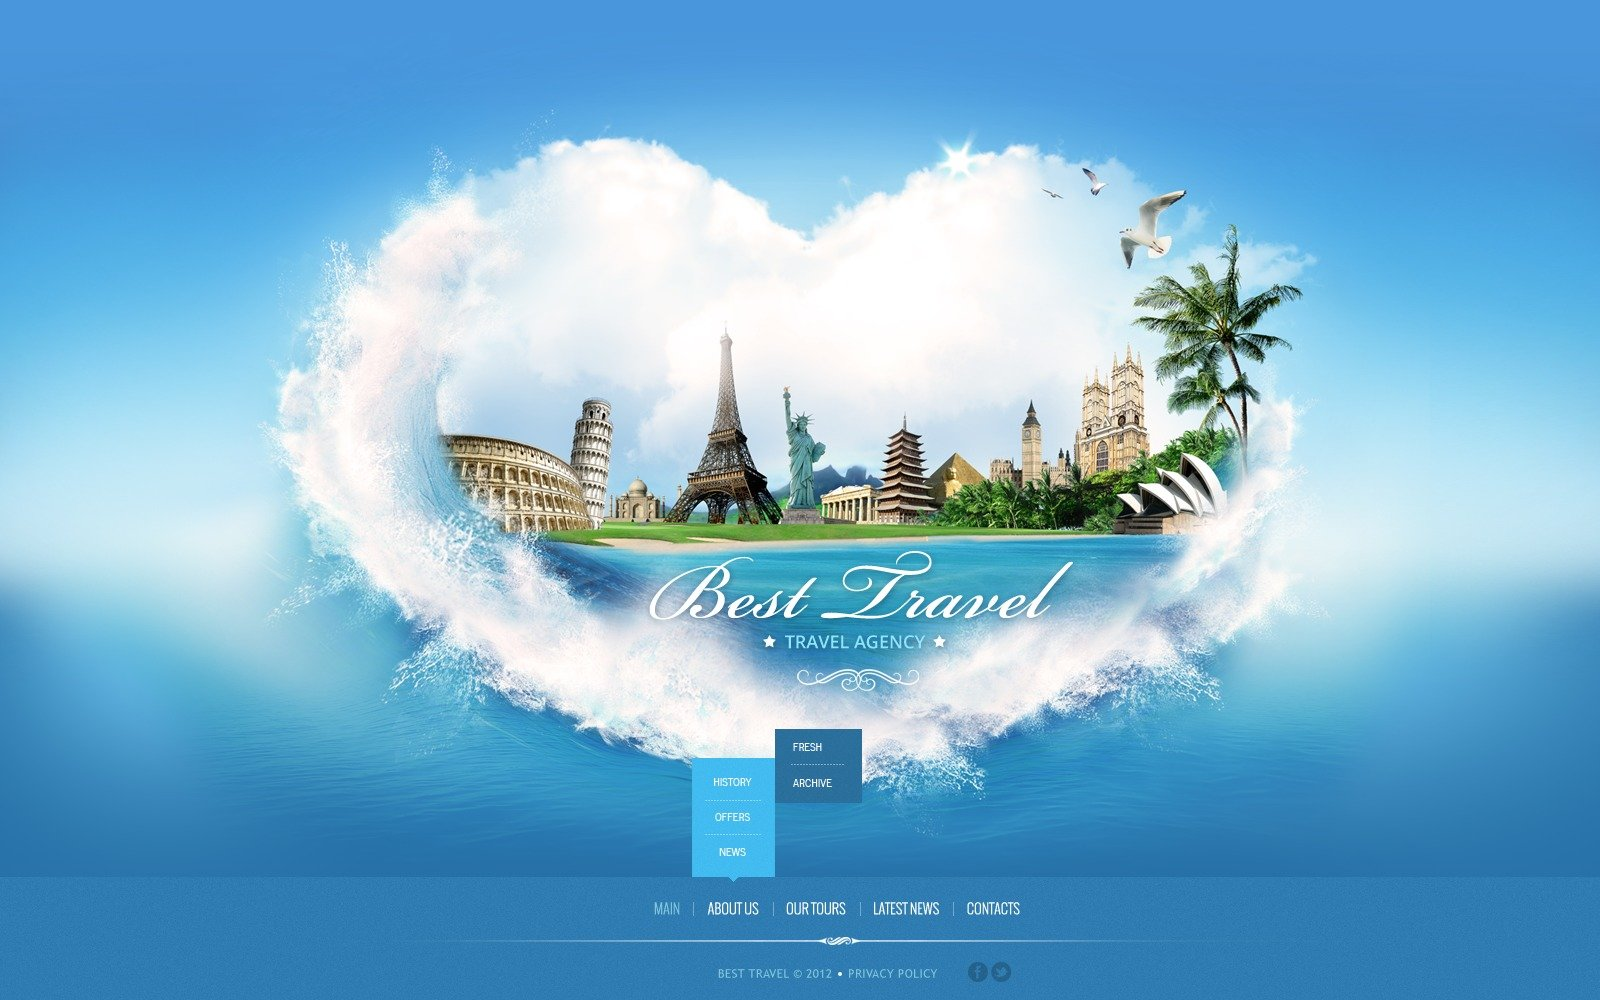 travel-agency-website-template_41928-original.jpg